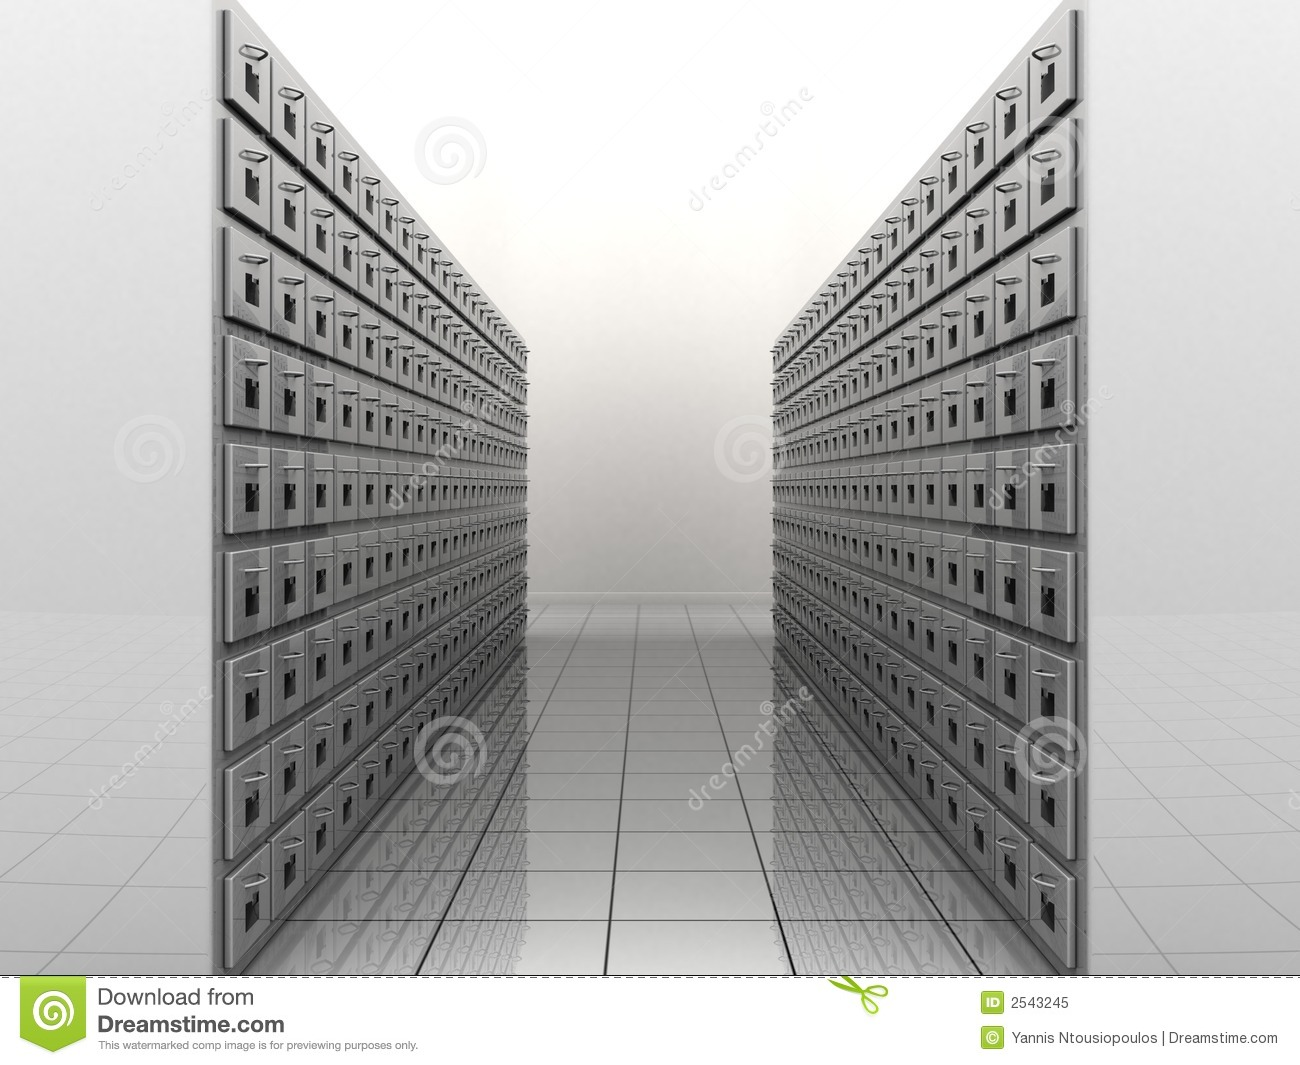 File Room Royalty Free Stock Photo  Image 2543245